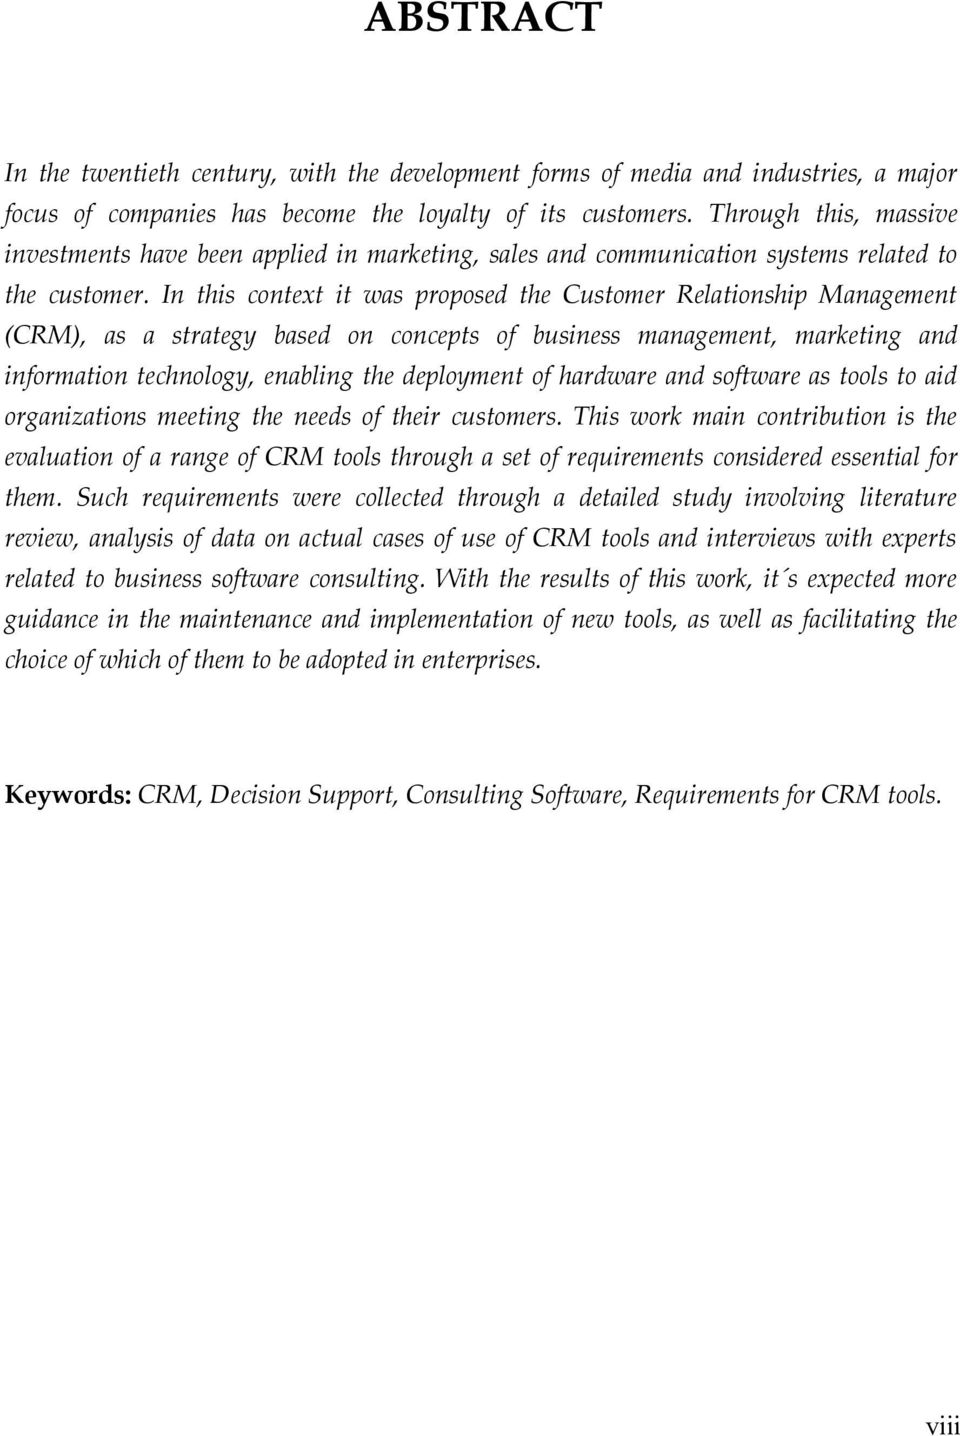 In this context it was proposed the Customer Relationship Management (CRM), as a strategy based on concepts of business management, marketing and information technology, enabling the deployment of